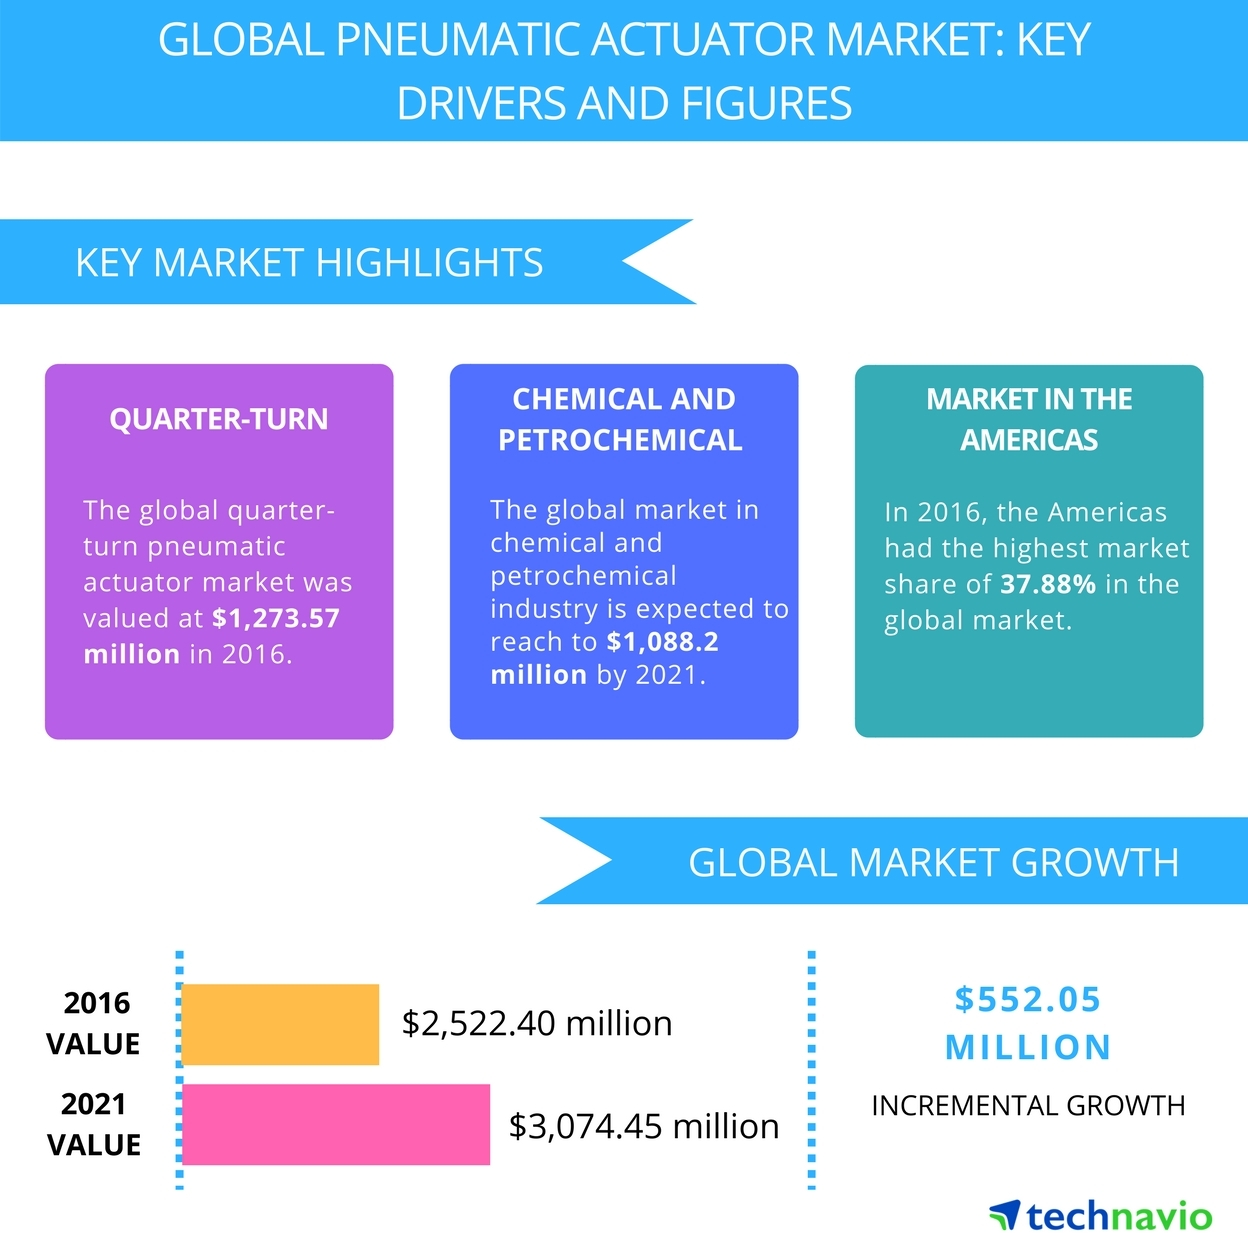 Top 5 Vendors in the Global Pneumatic Actuator Market From 2017 to